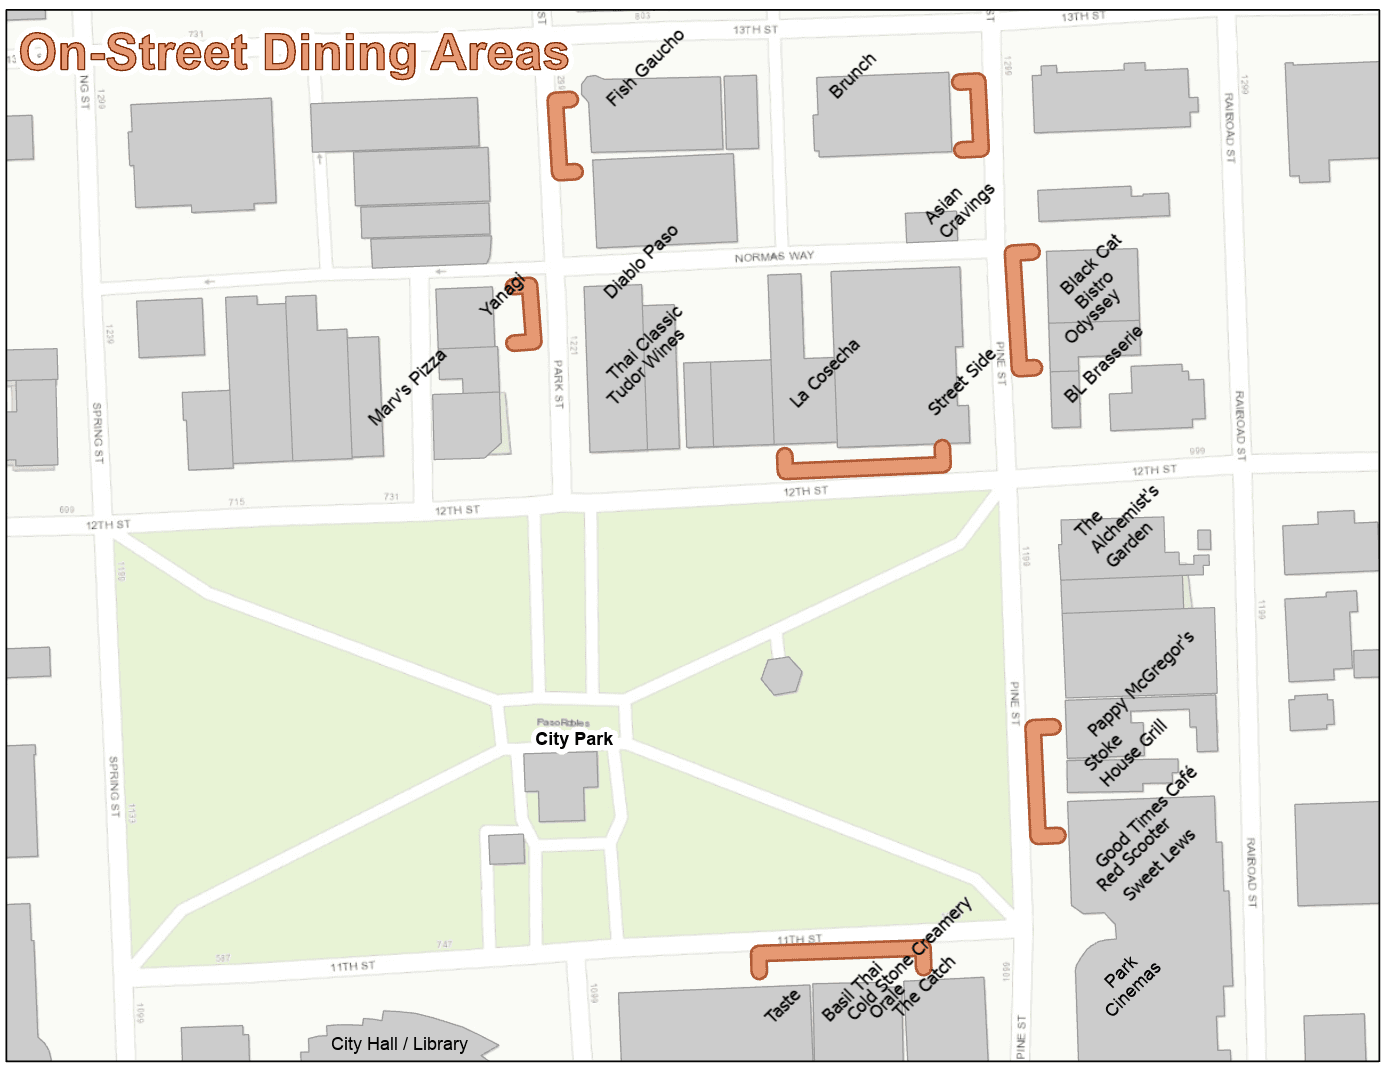 On-street dining map - Phase 2